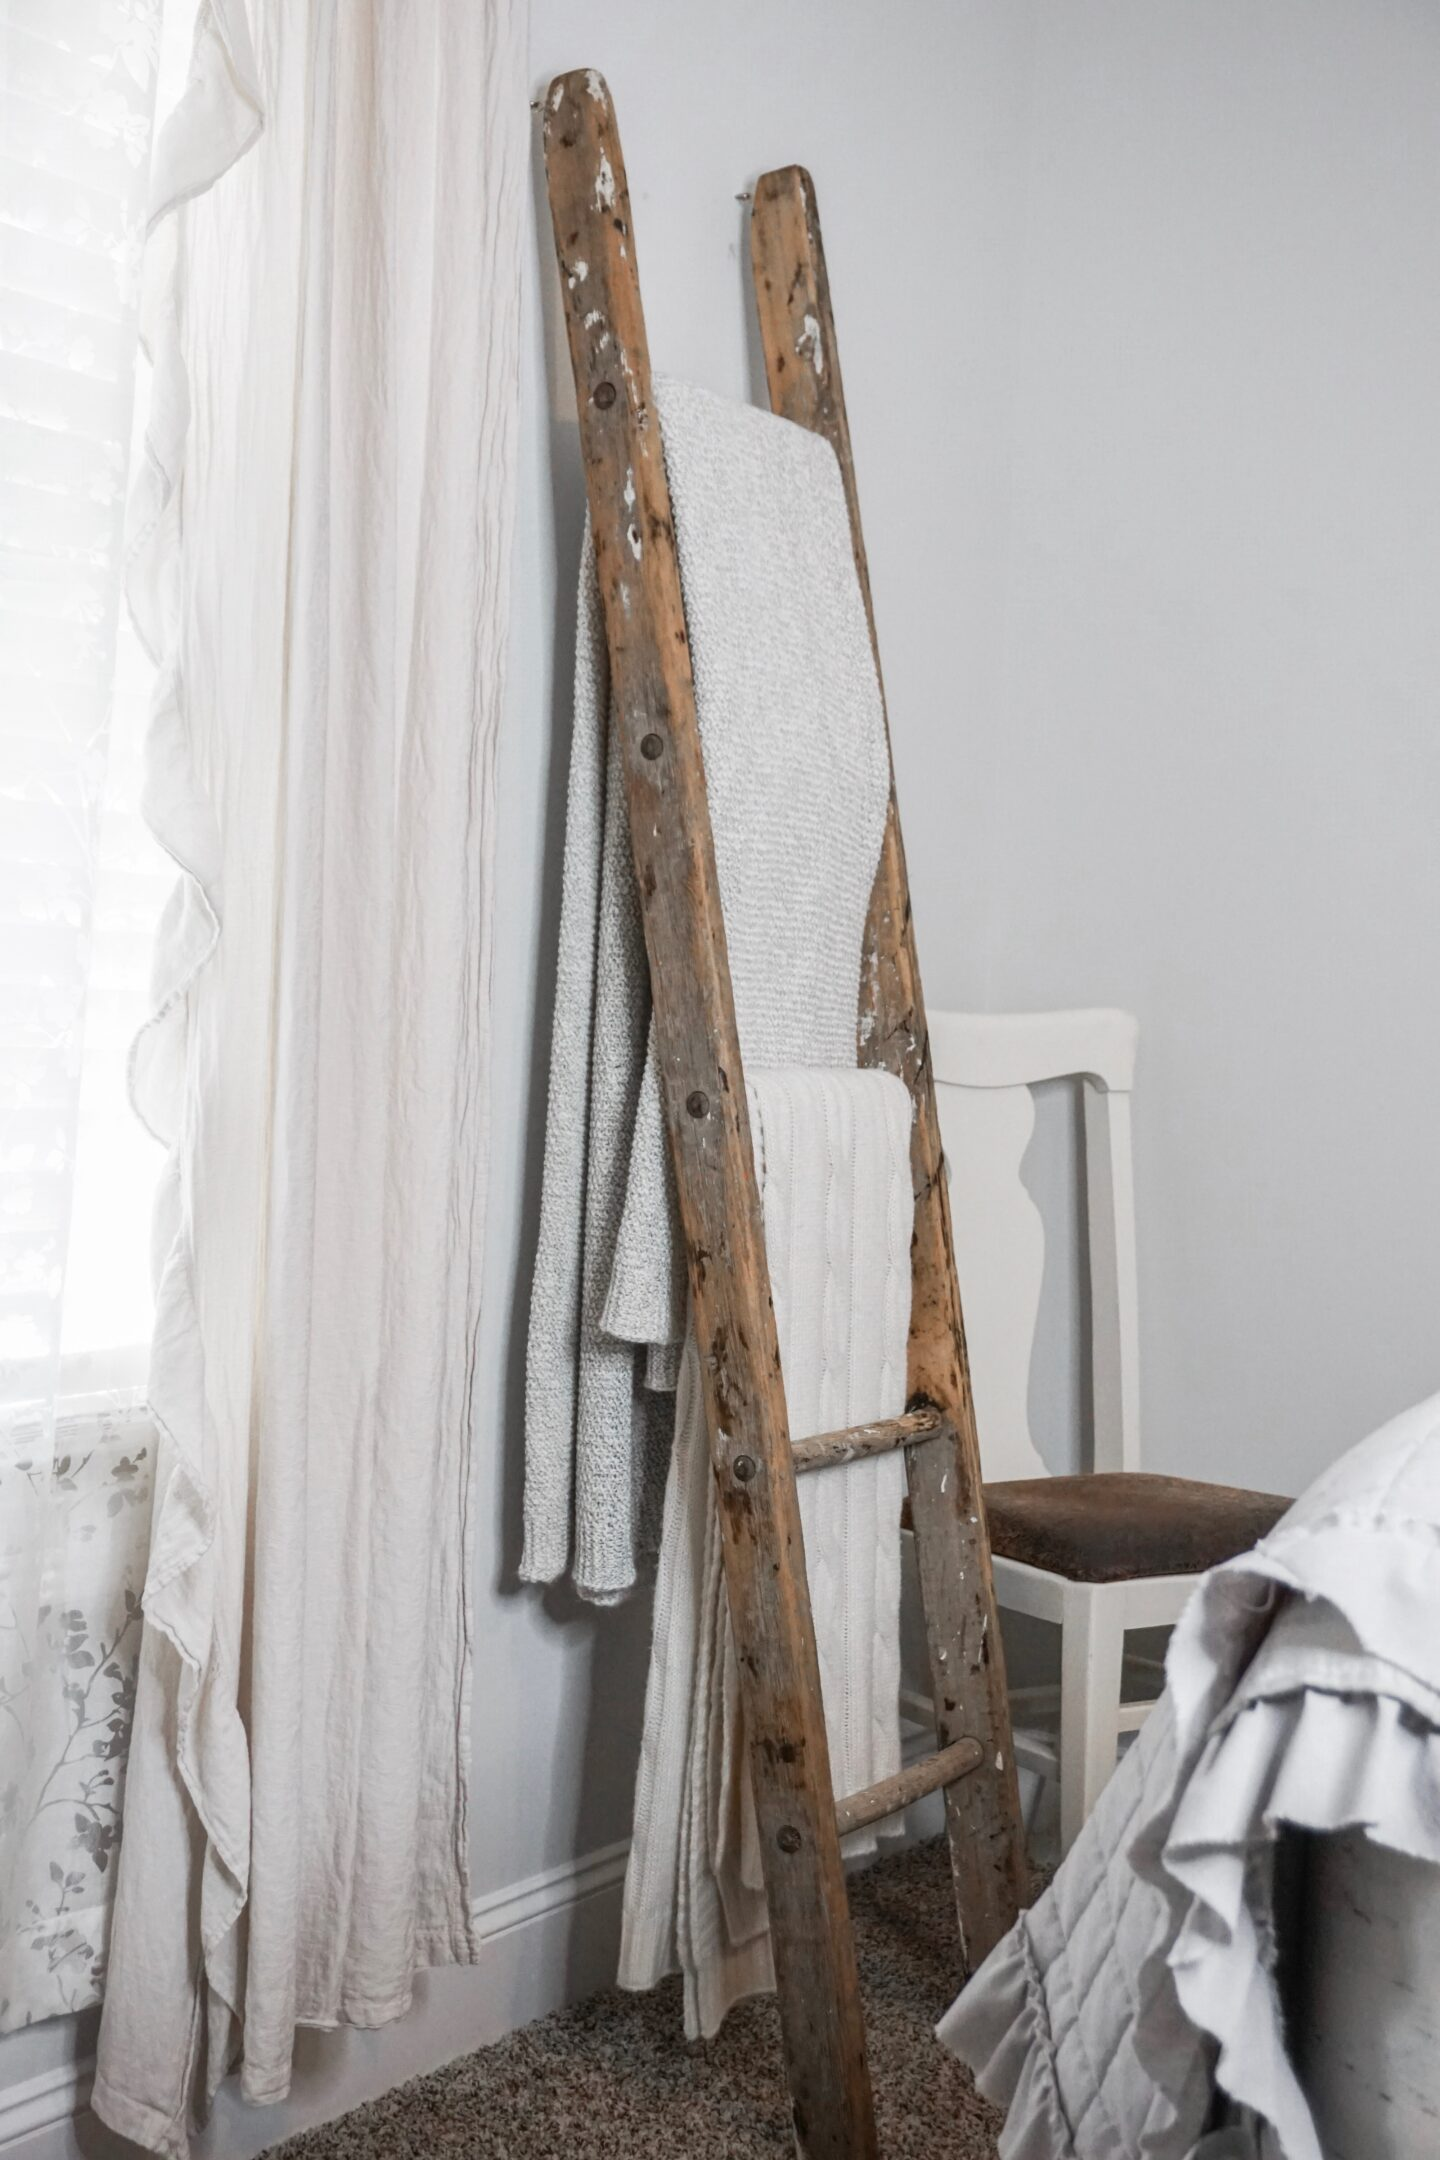 Farmhouse decorative blanket ladder anchored to the wall.